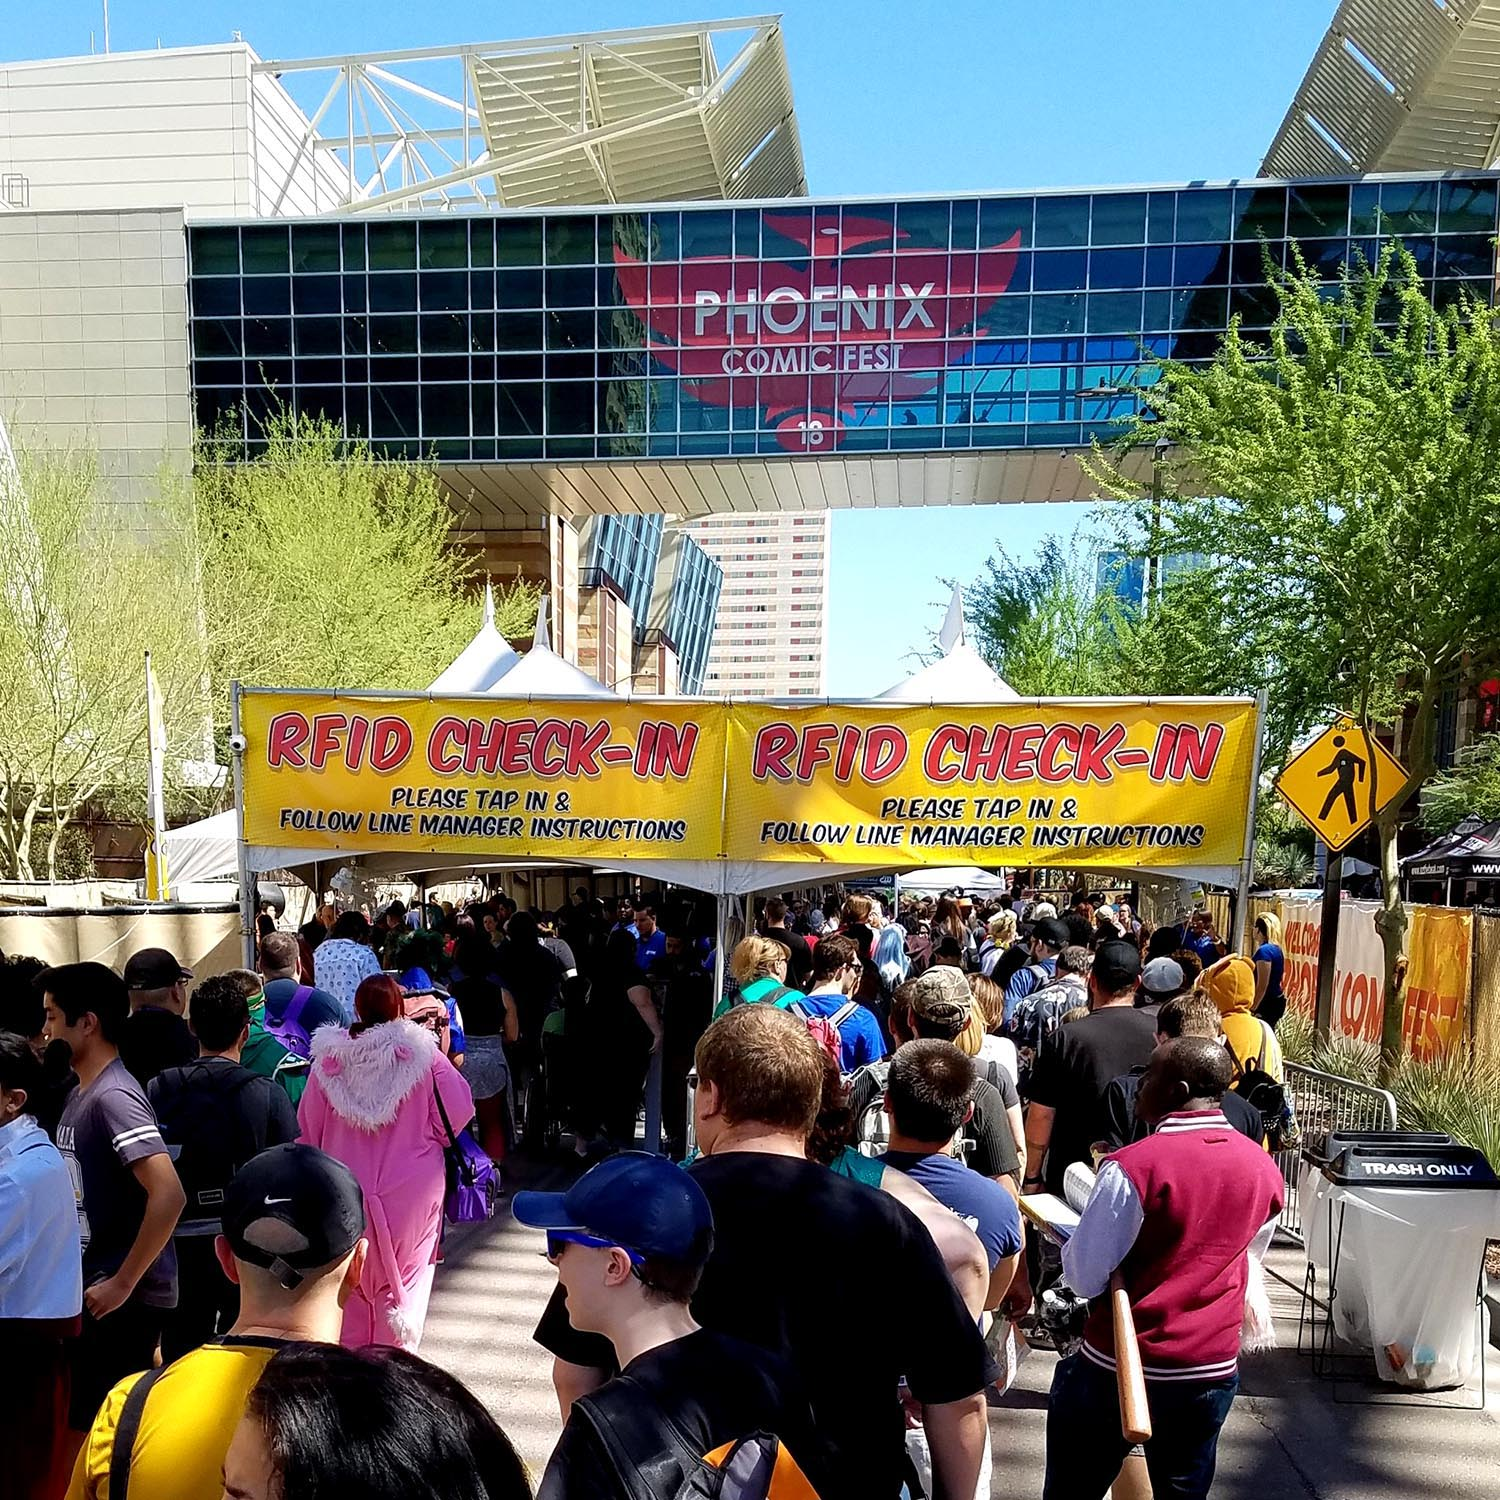 Attendees line up to check in on the second day of Phoenix Comic Fest, Friday, May 25, 2018, at the Phoenix Convention Center.